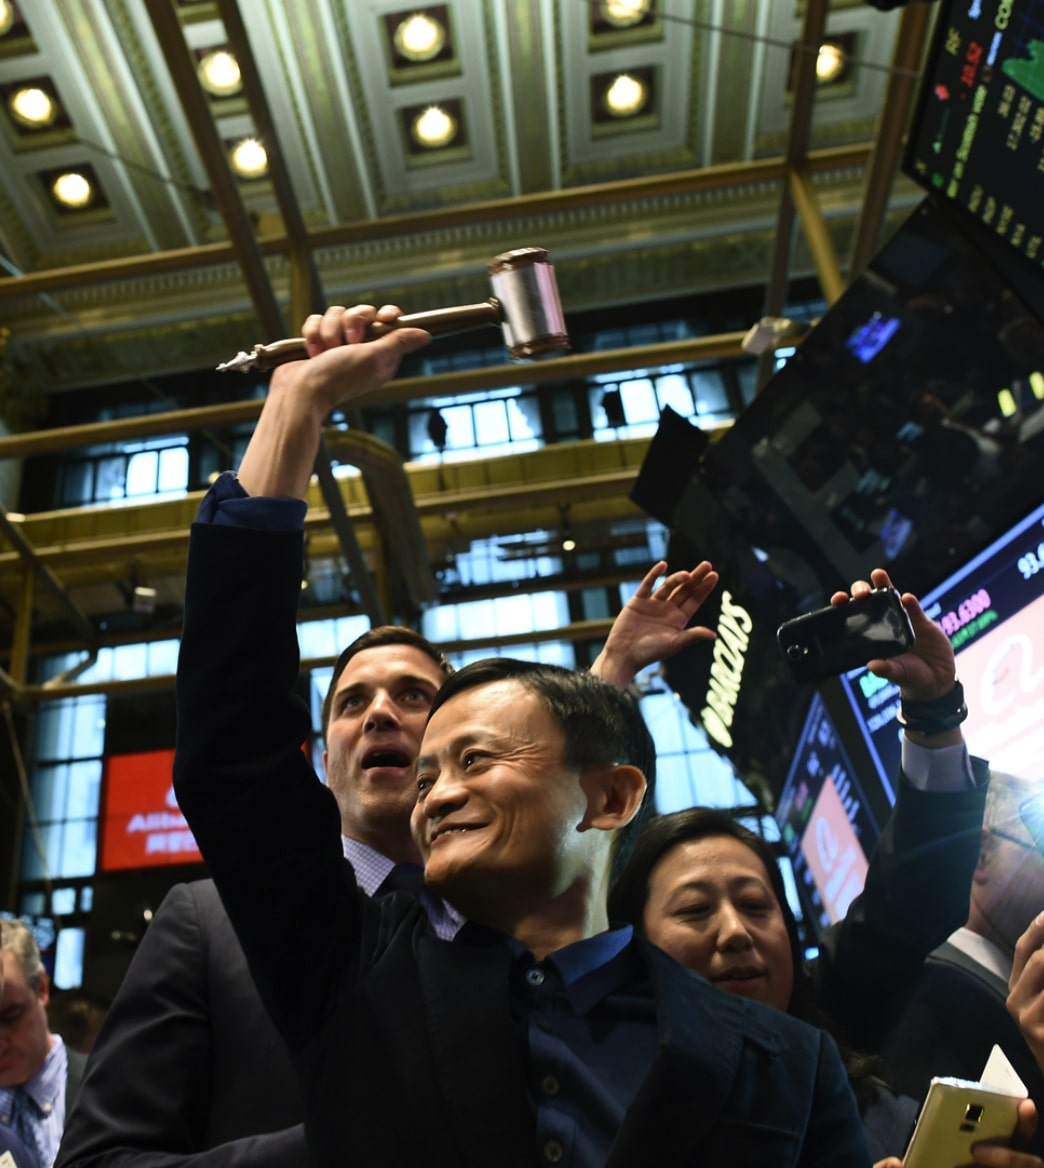 Genie out of the Bottle - The impact of the Alibaba IPO